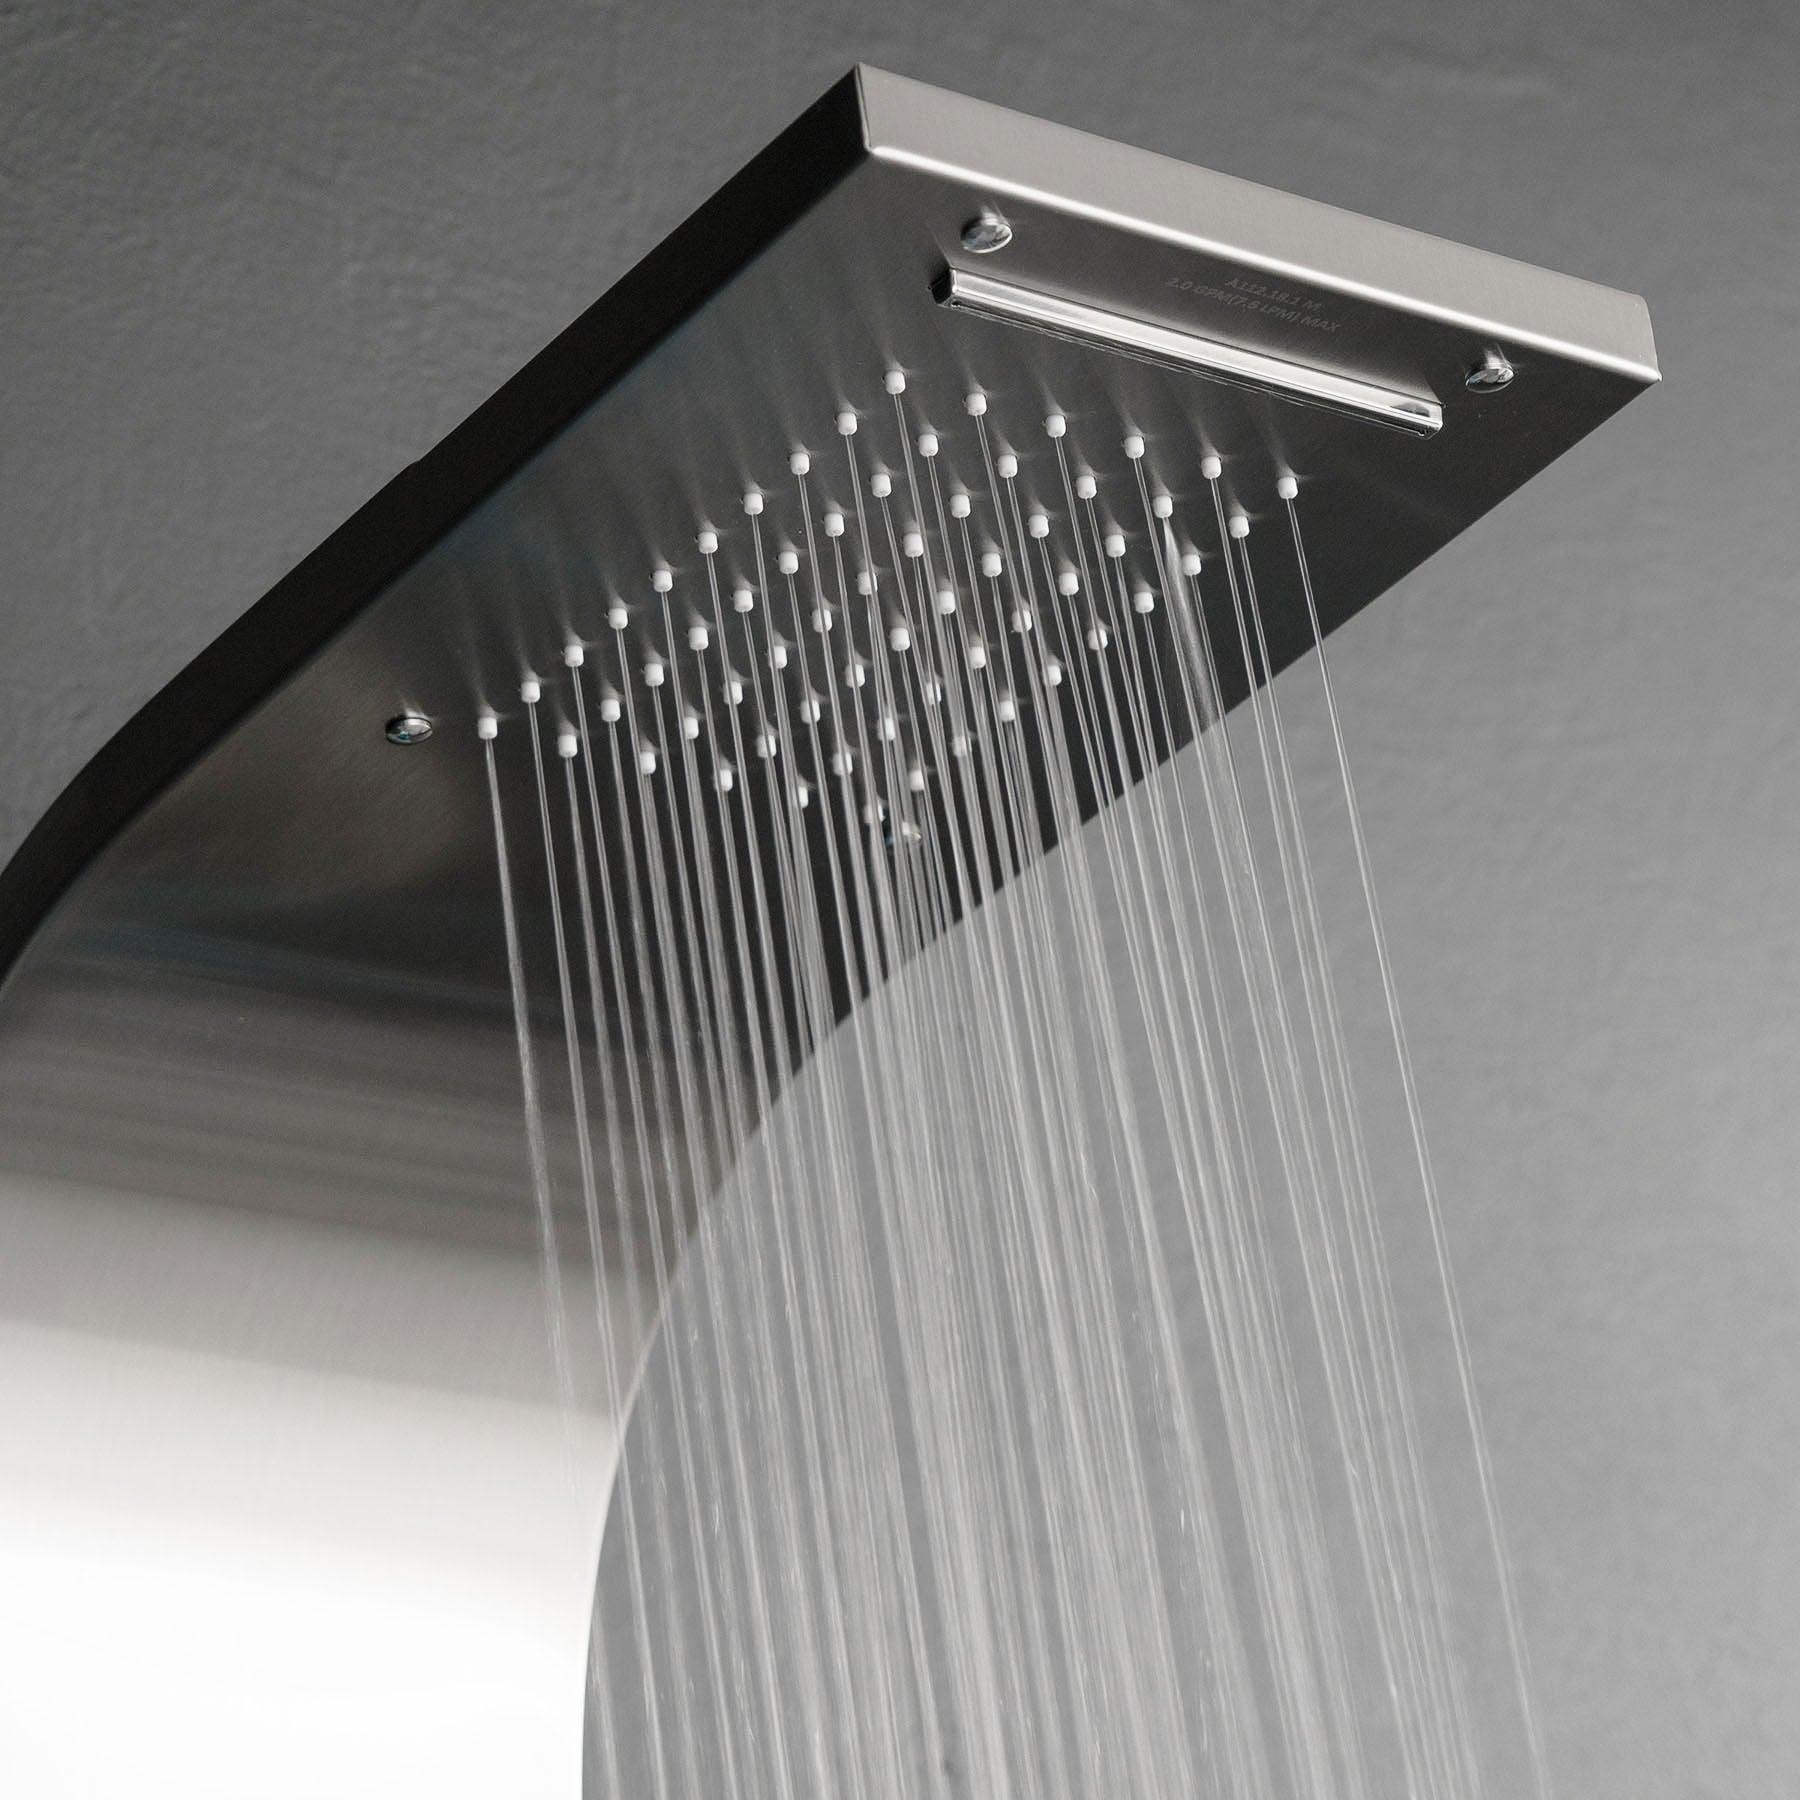 Akdy 59 Rainfall Waterfall Stainless Steel Bathroom Shower Panel System W Spa Handheld Wand